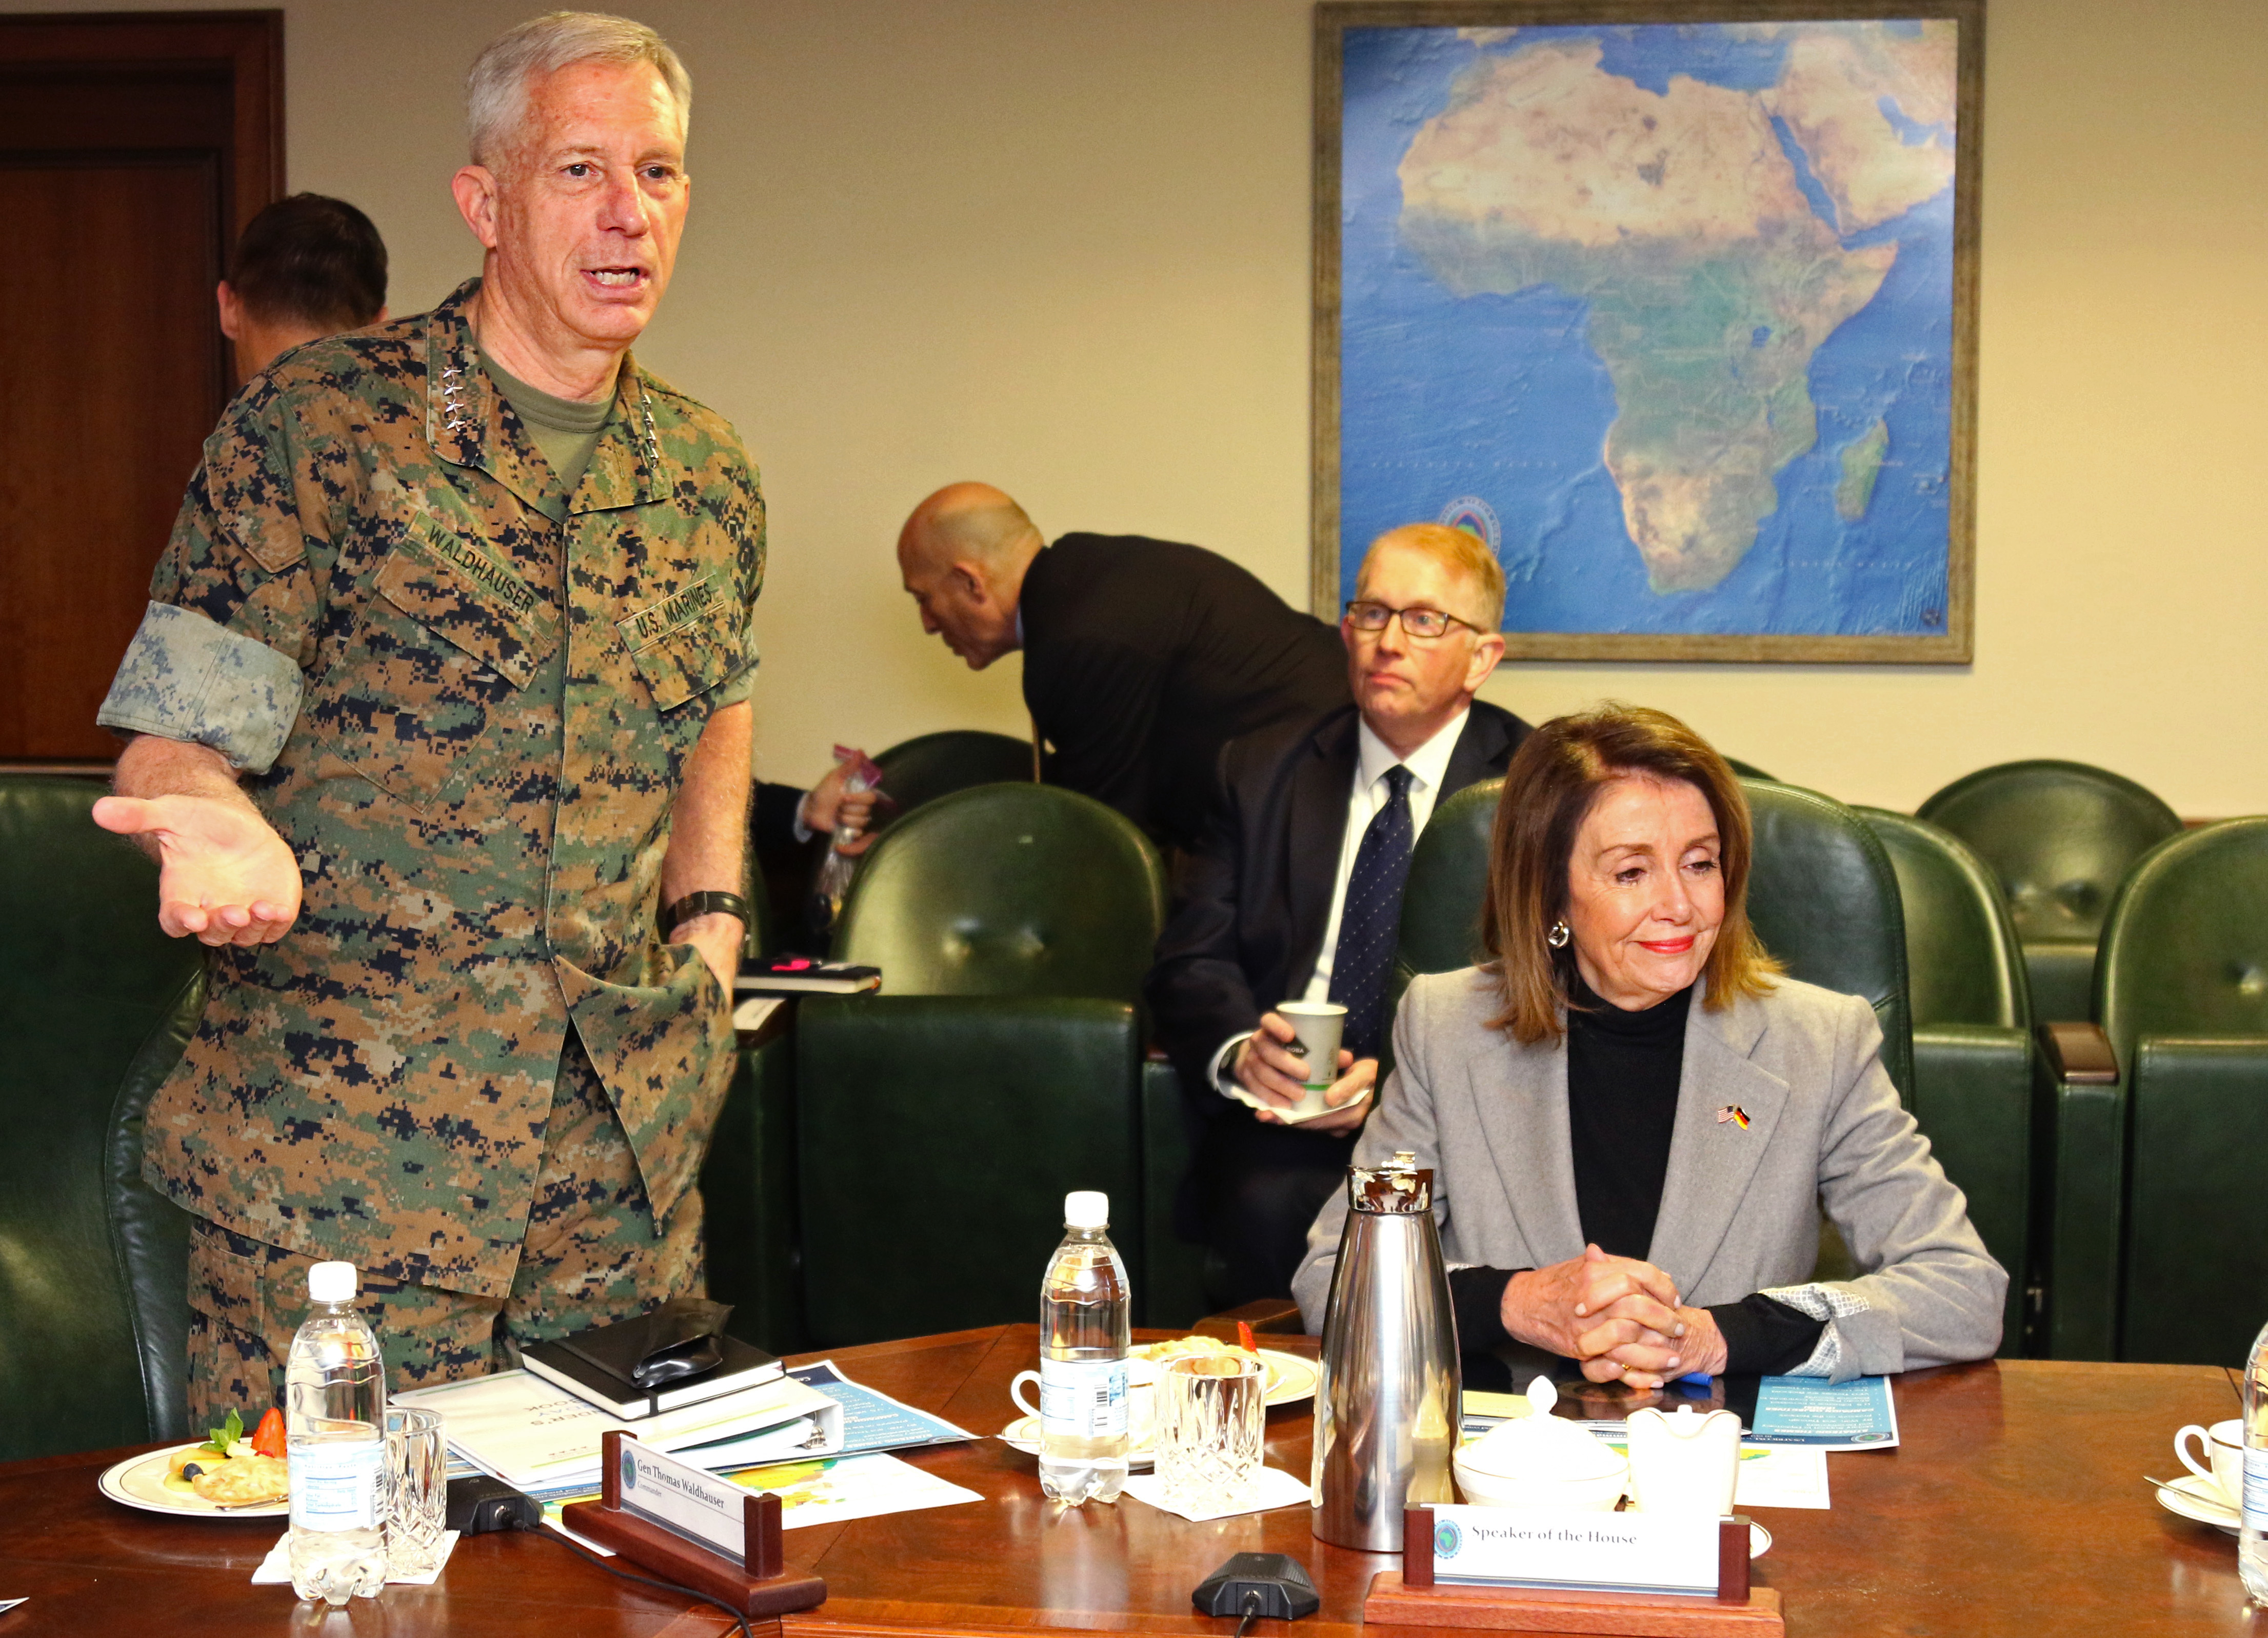 Marine Corps Gen. Thomas Waldhauser, commander, U.S. Africa Command, speaks to a congressional delagation during a visit April 13, 2019 in Stuttgart, Germany. The delegation which included Speaker of the House Nancy Pelosi visited AFRICOM to gain insight about the command's operations and activities supporting the U.S. strategy for Africa. (U.S. Army photo by Nate Herring/Released)